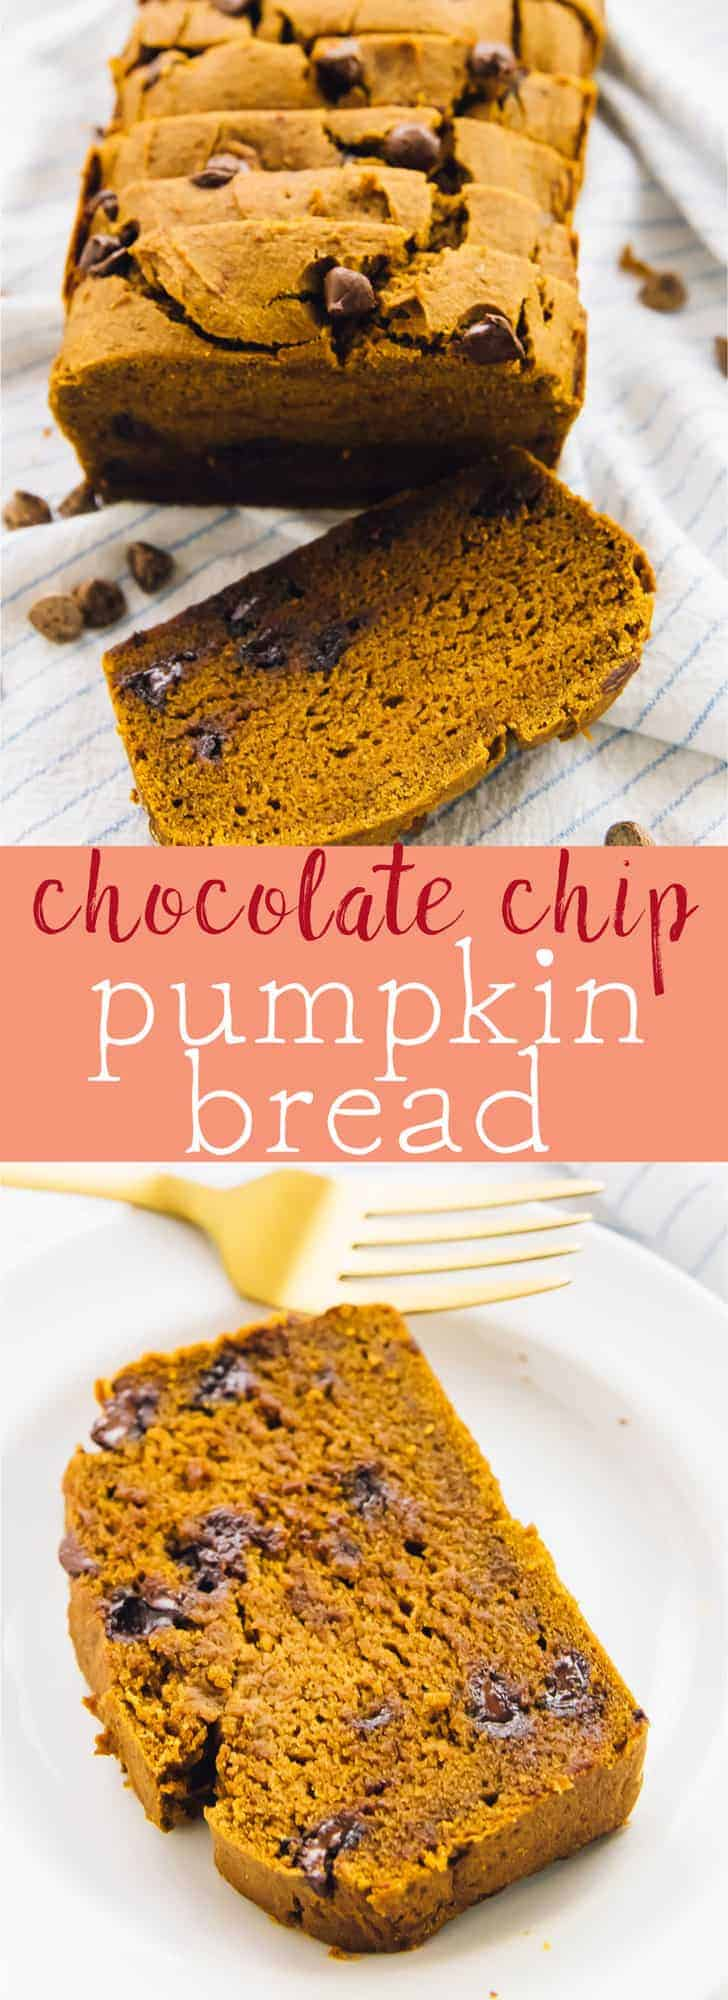 This moist Vegan Chocolate Chip Pumpkin Bread will win you and all your friends over! It's gluten free, easy to make and taste absolutely divine! via https://jessicainthekitchen.com